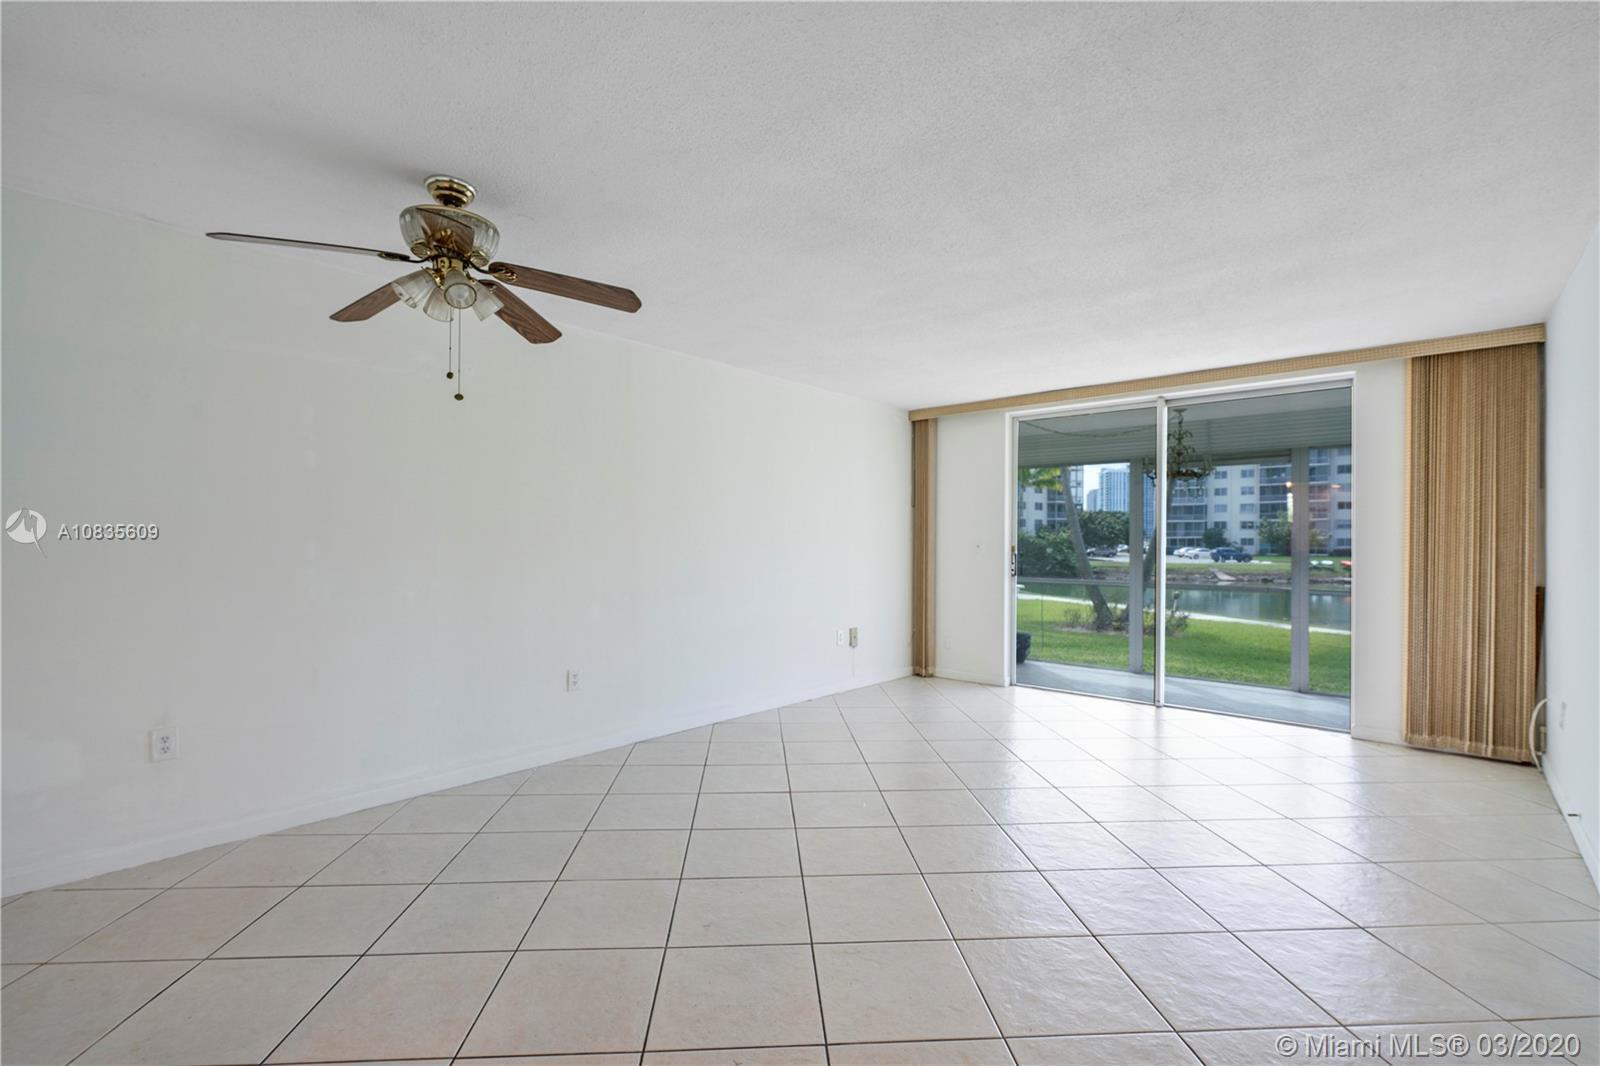 LOCATION, LOCATION, LOCATION. IN THE MIDDLE OF  AVENTURA. WHERE ALL THE ACTION IS! BEAUTIFUL LAKE VI